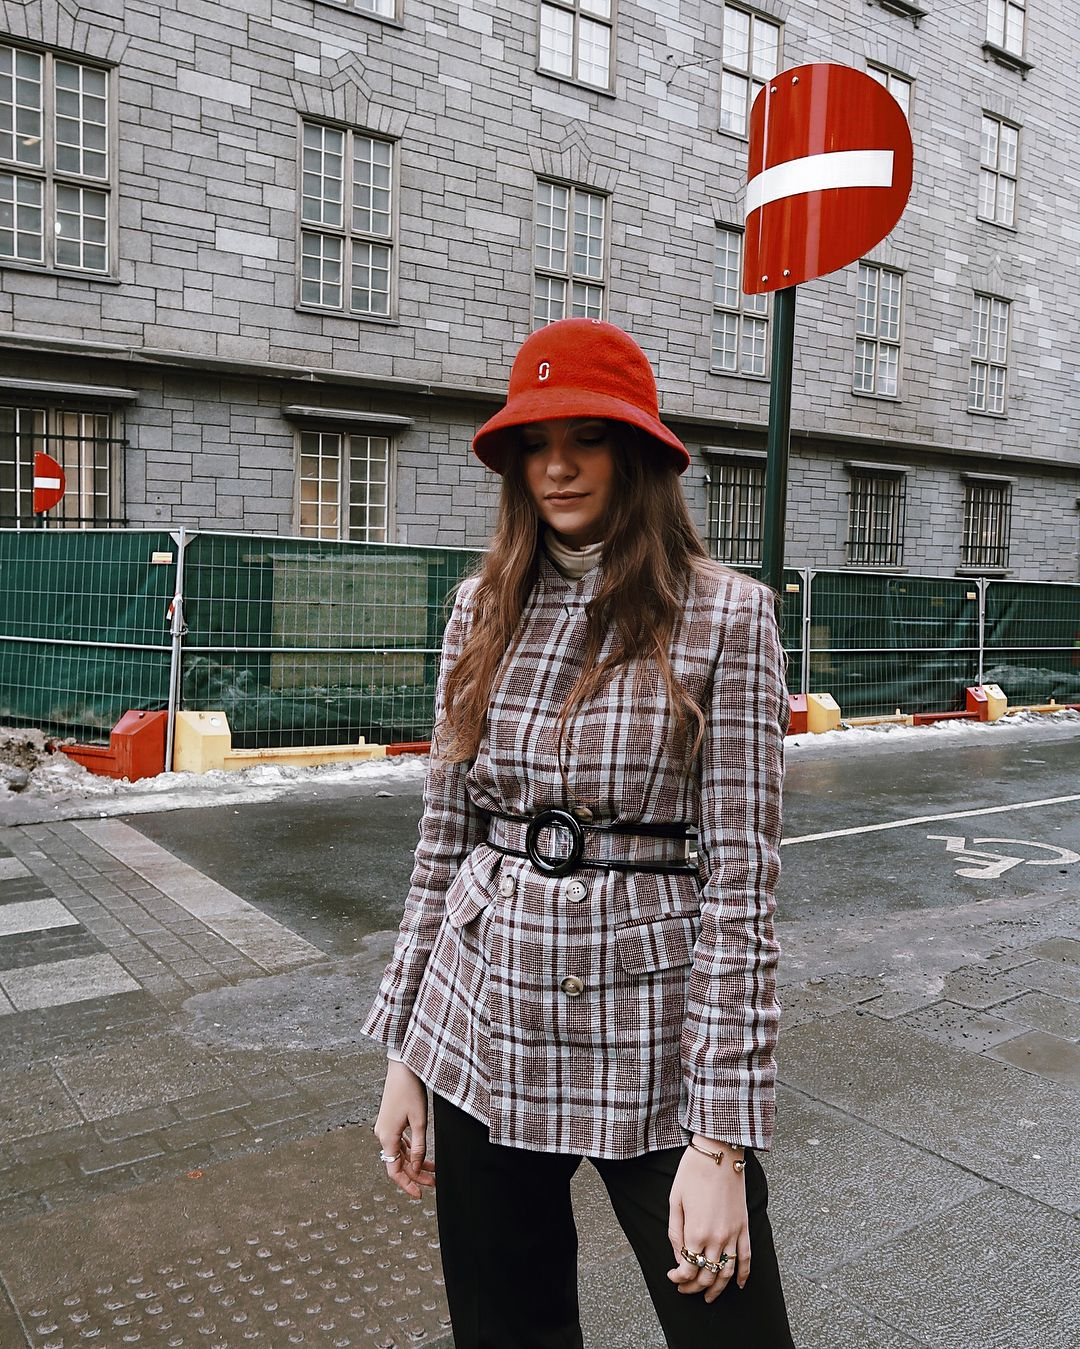 de7d4ae108c Maren Schia spotted wearing our Marc Jacobs x Kangol Bucket Hat